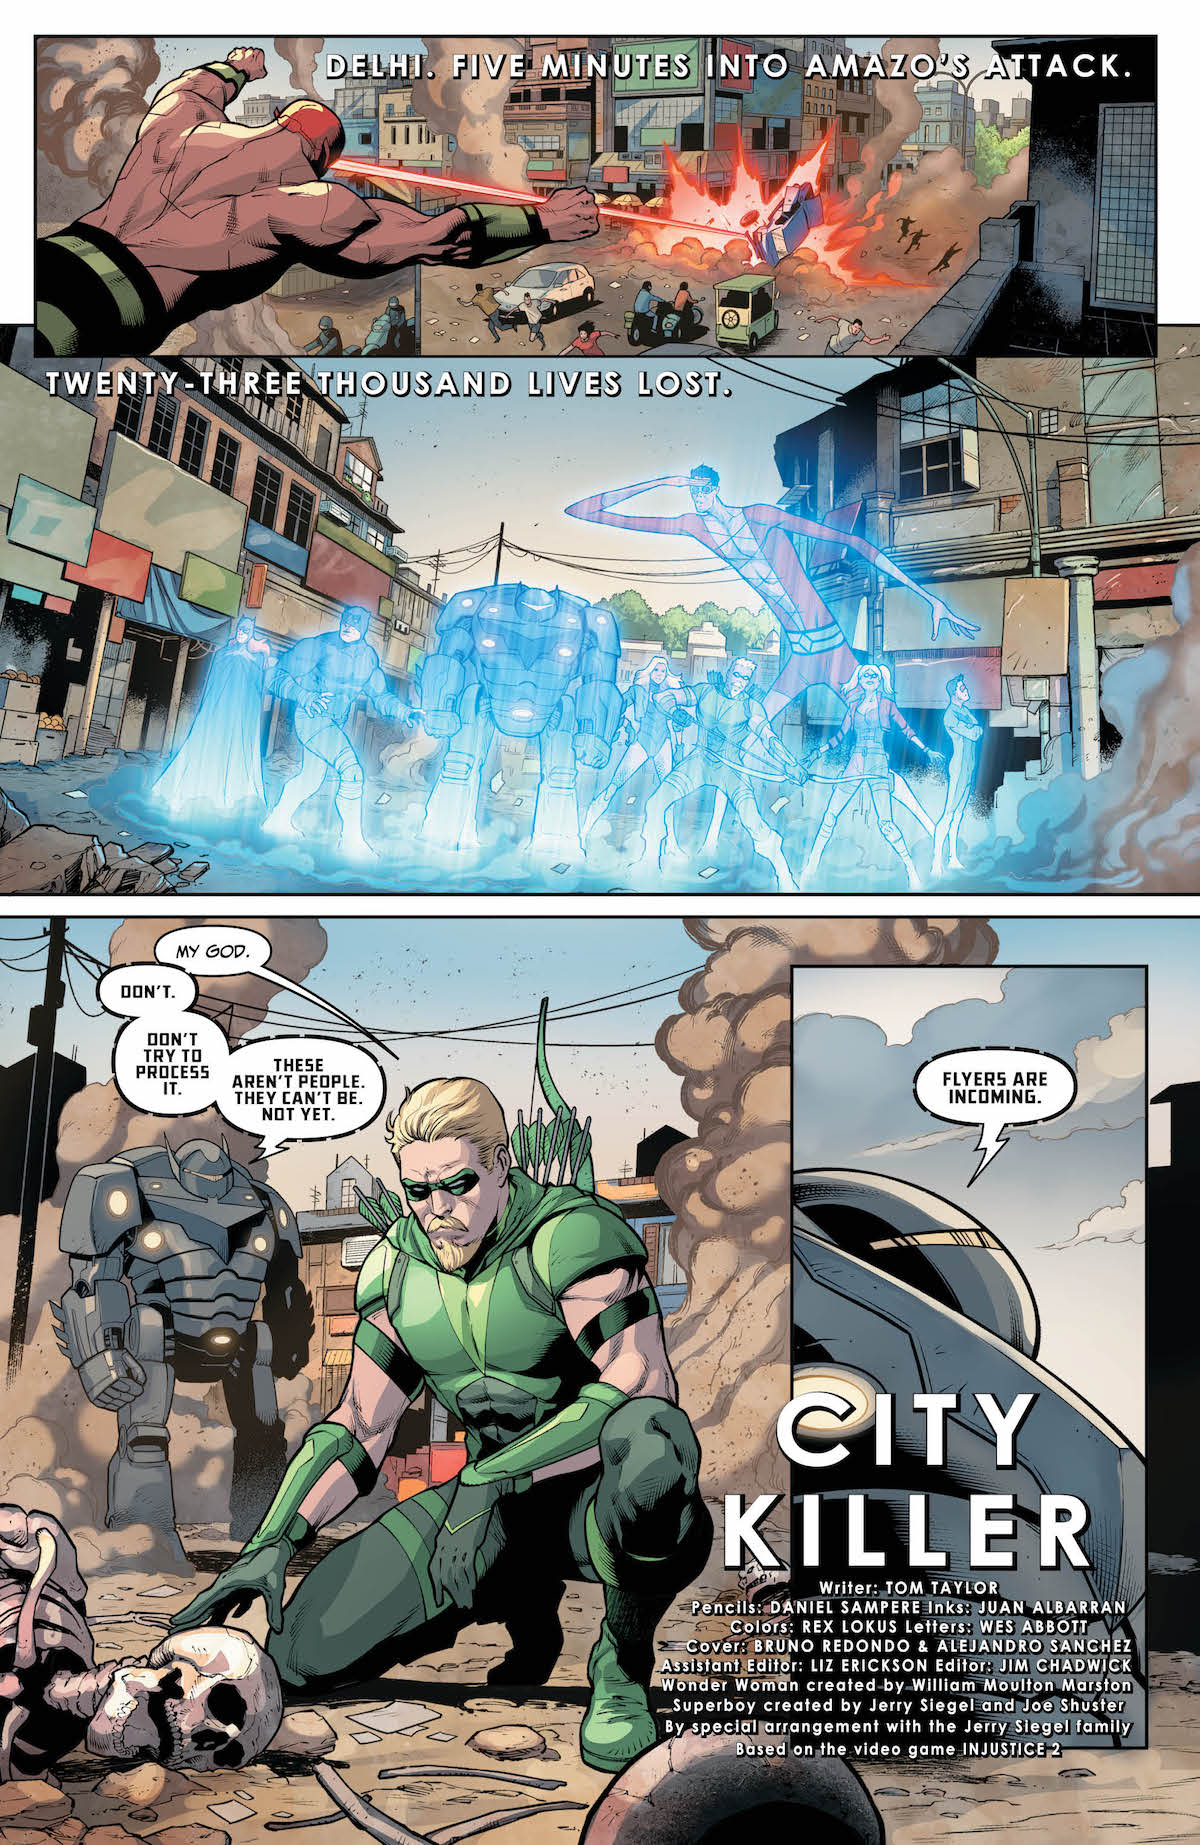 Injustice 2 #23 page 1